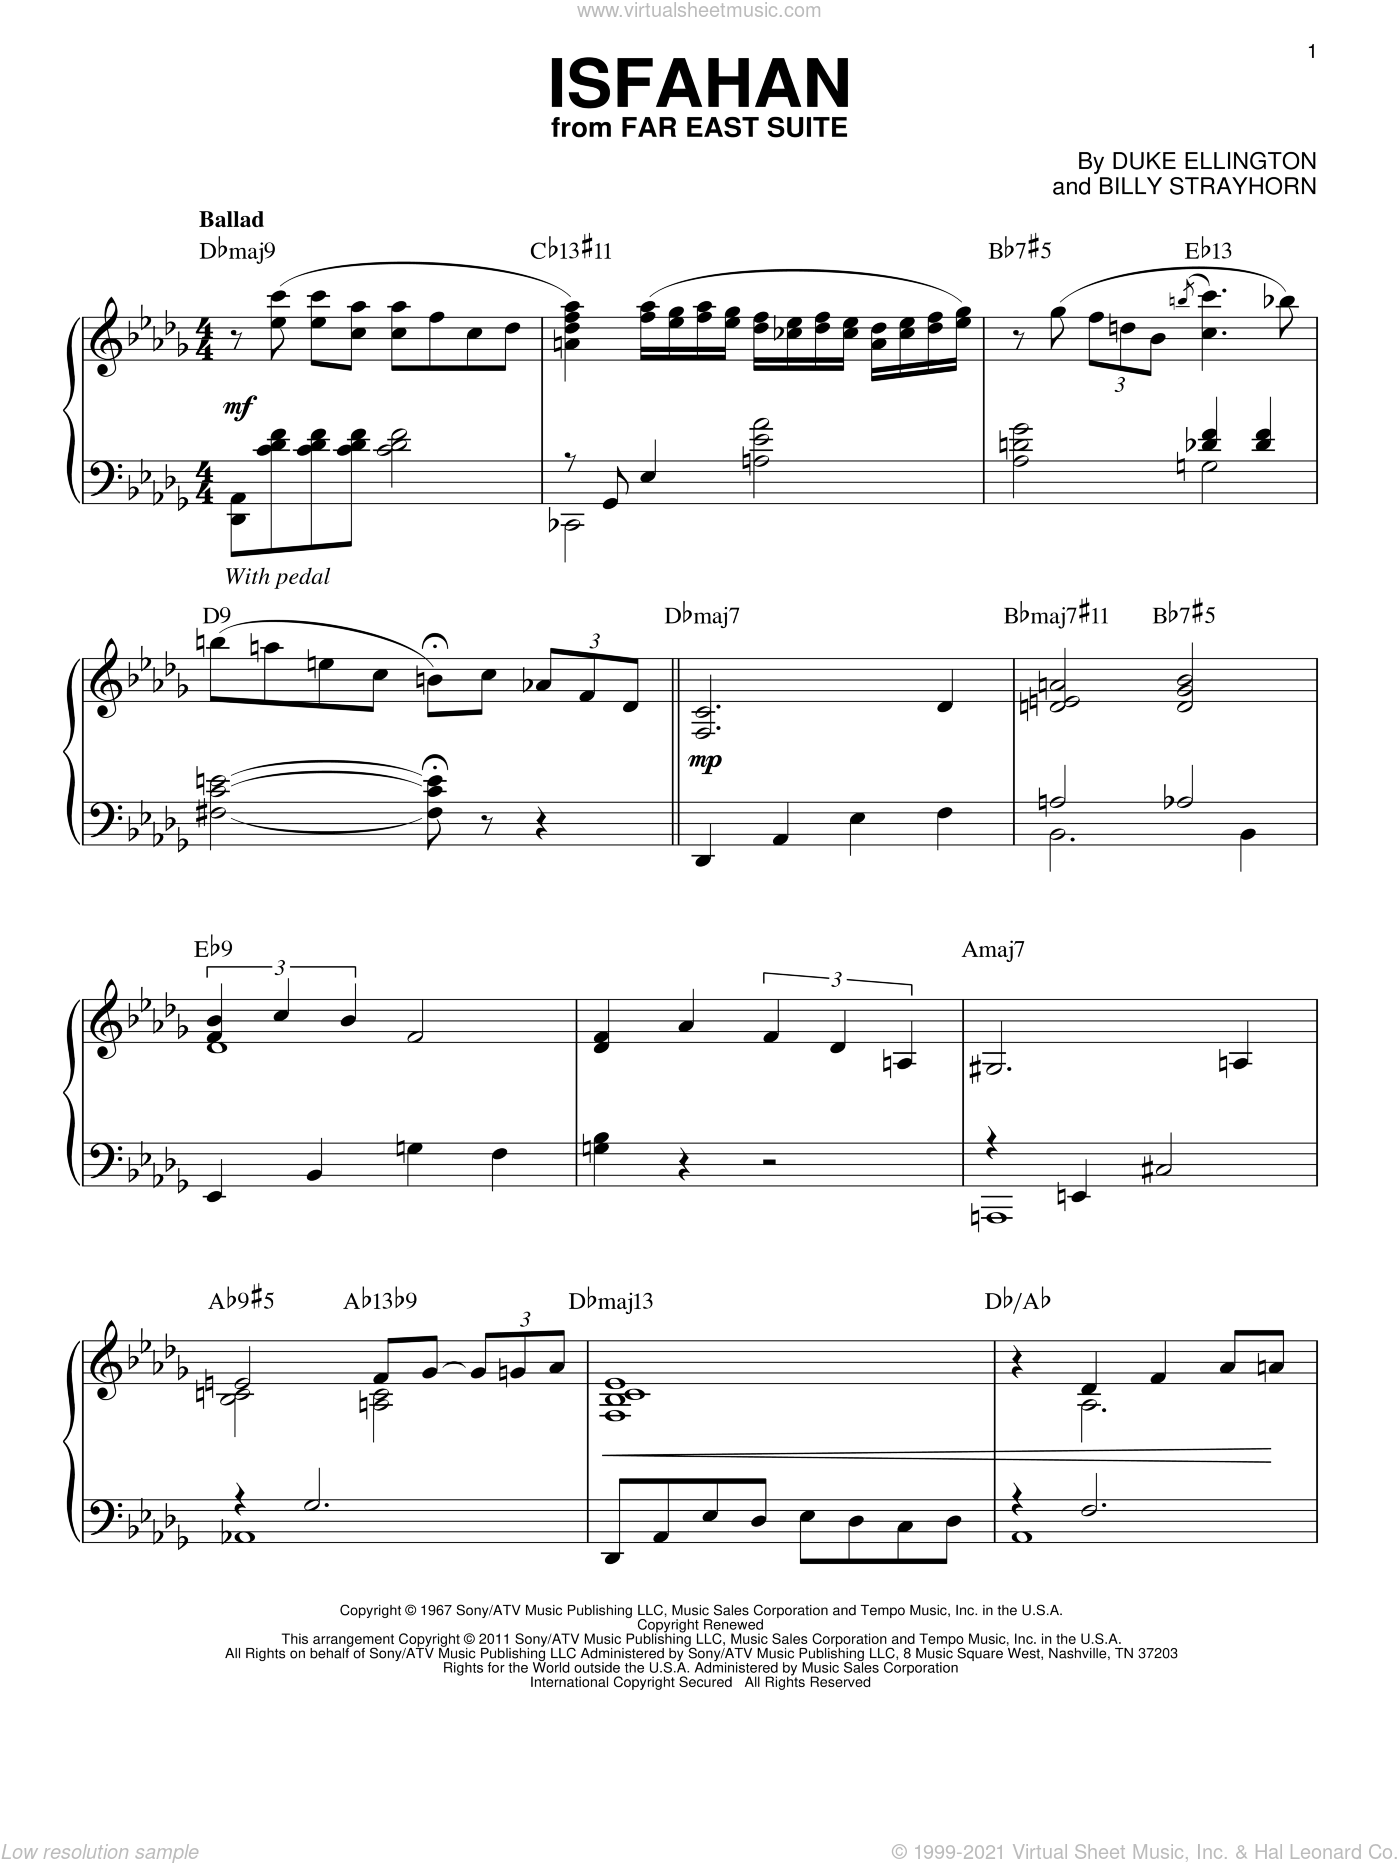 Isfahan (arr. Brent Edstrom) sheet music for piano solo by Duke Ellington and Billy Strayhorn, intermediate skill level